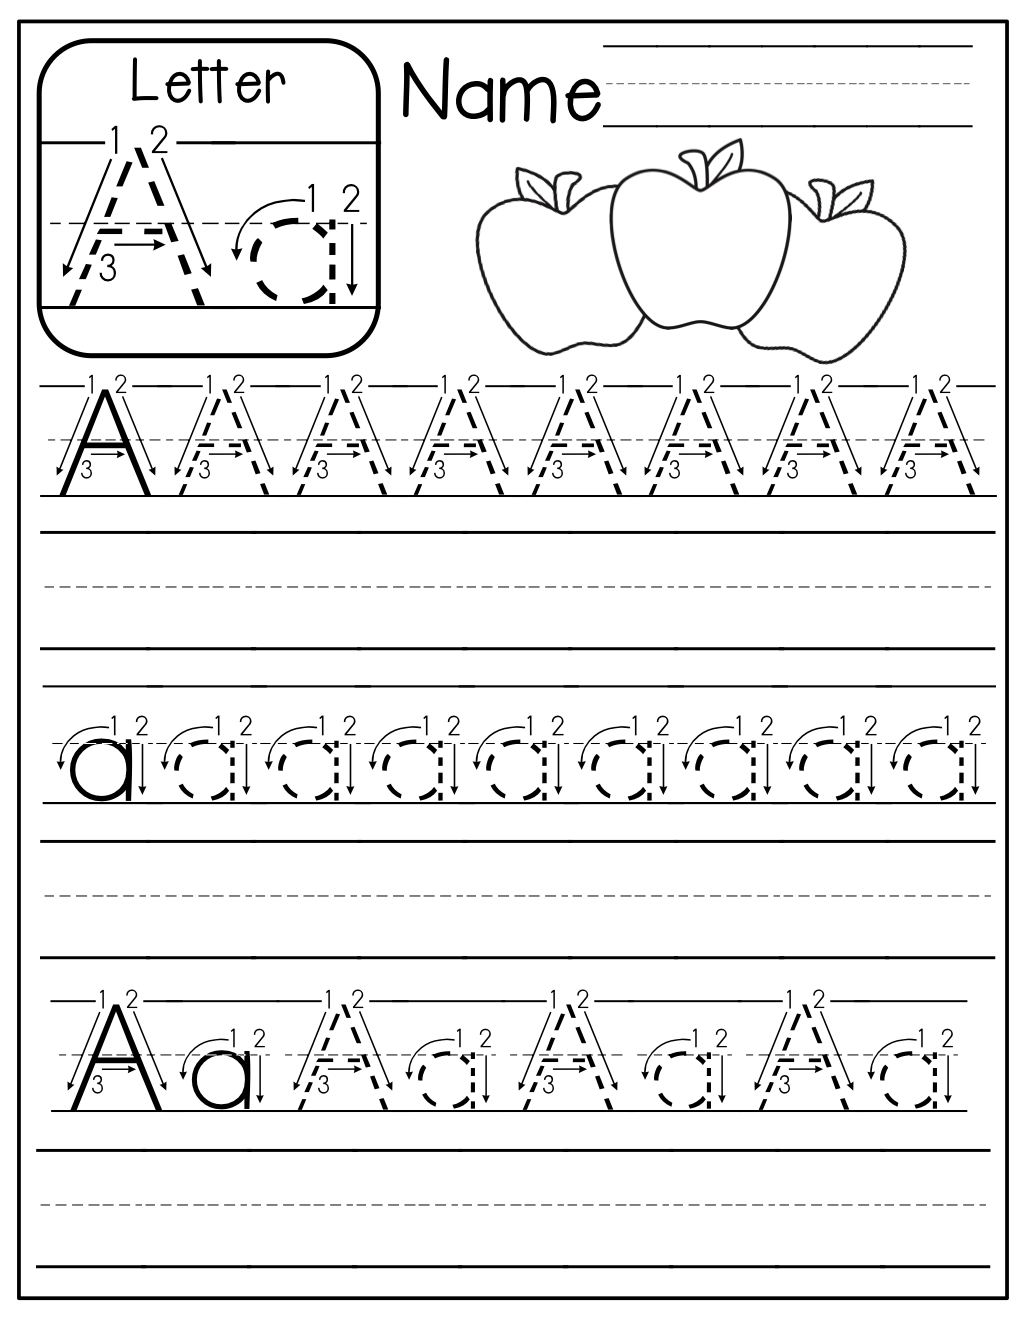 Free…free!! A-Z Handwriting Pages! Just Print Them Out intended for Alphabet Handwriting Worksheets A To Z